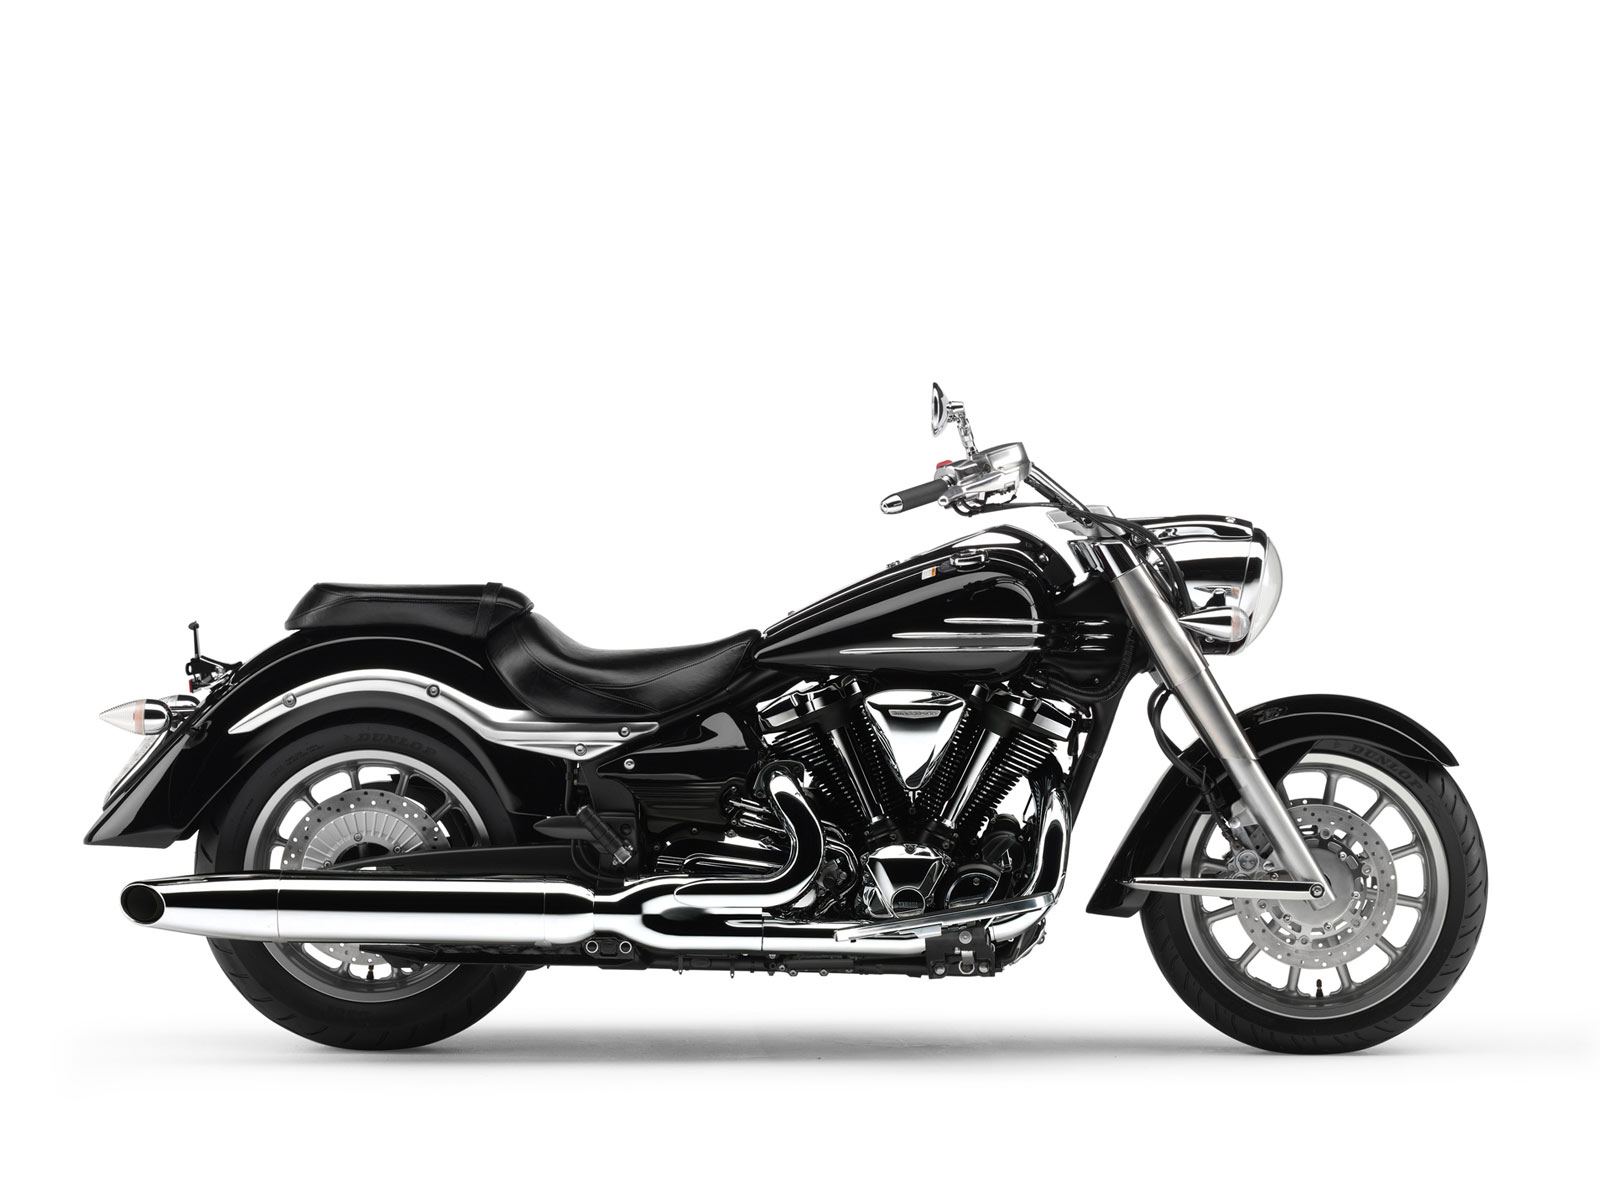 2011 Yamaha XV1900A Midnight Star #2